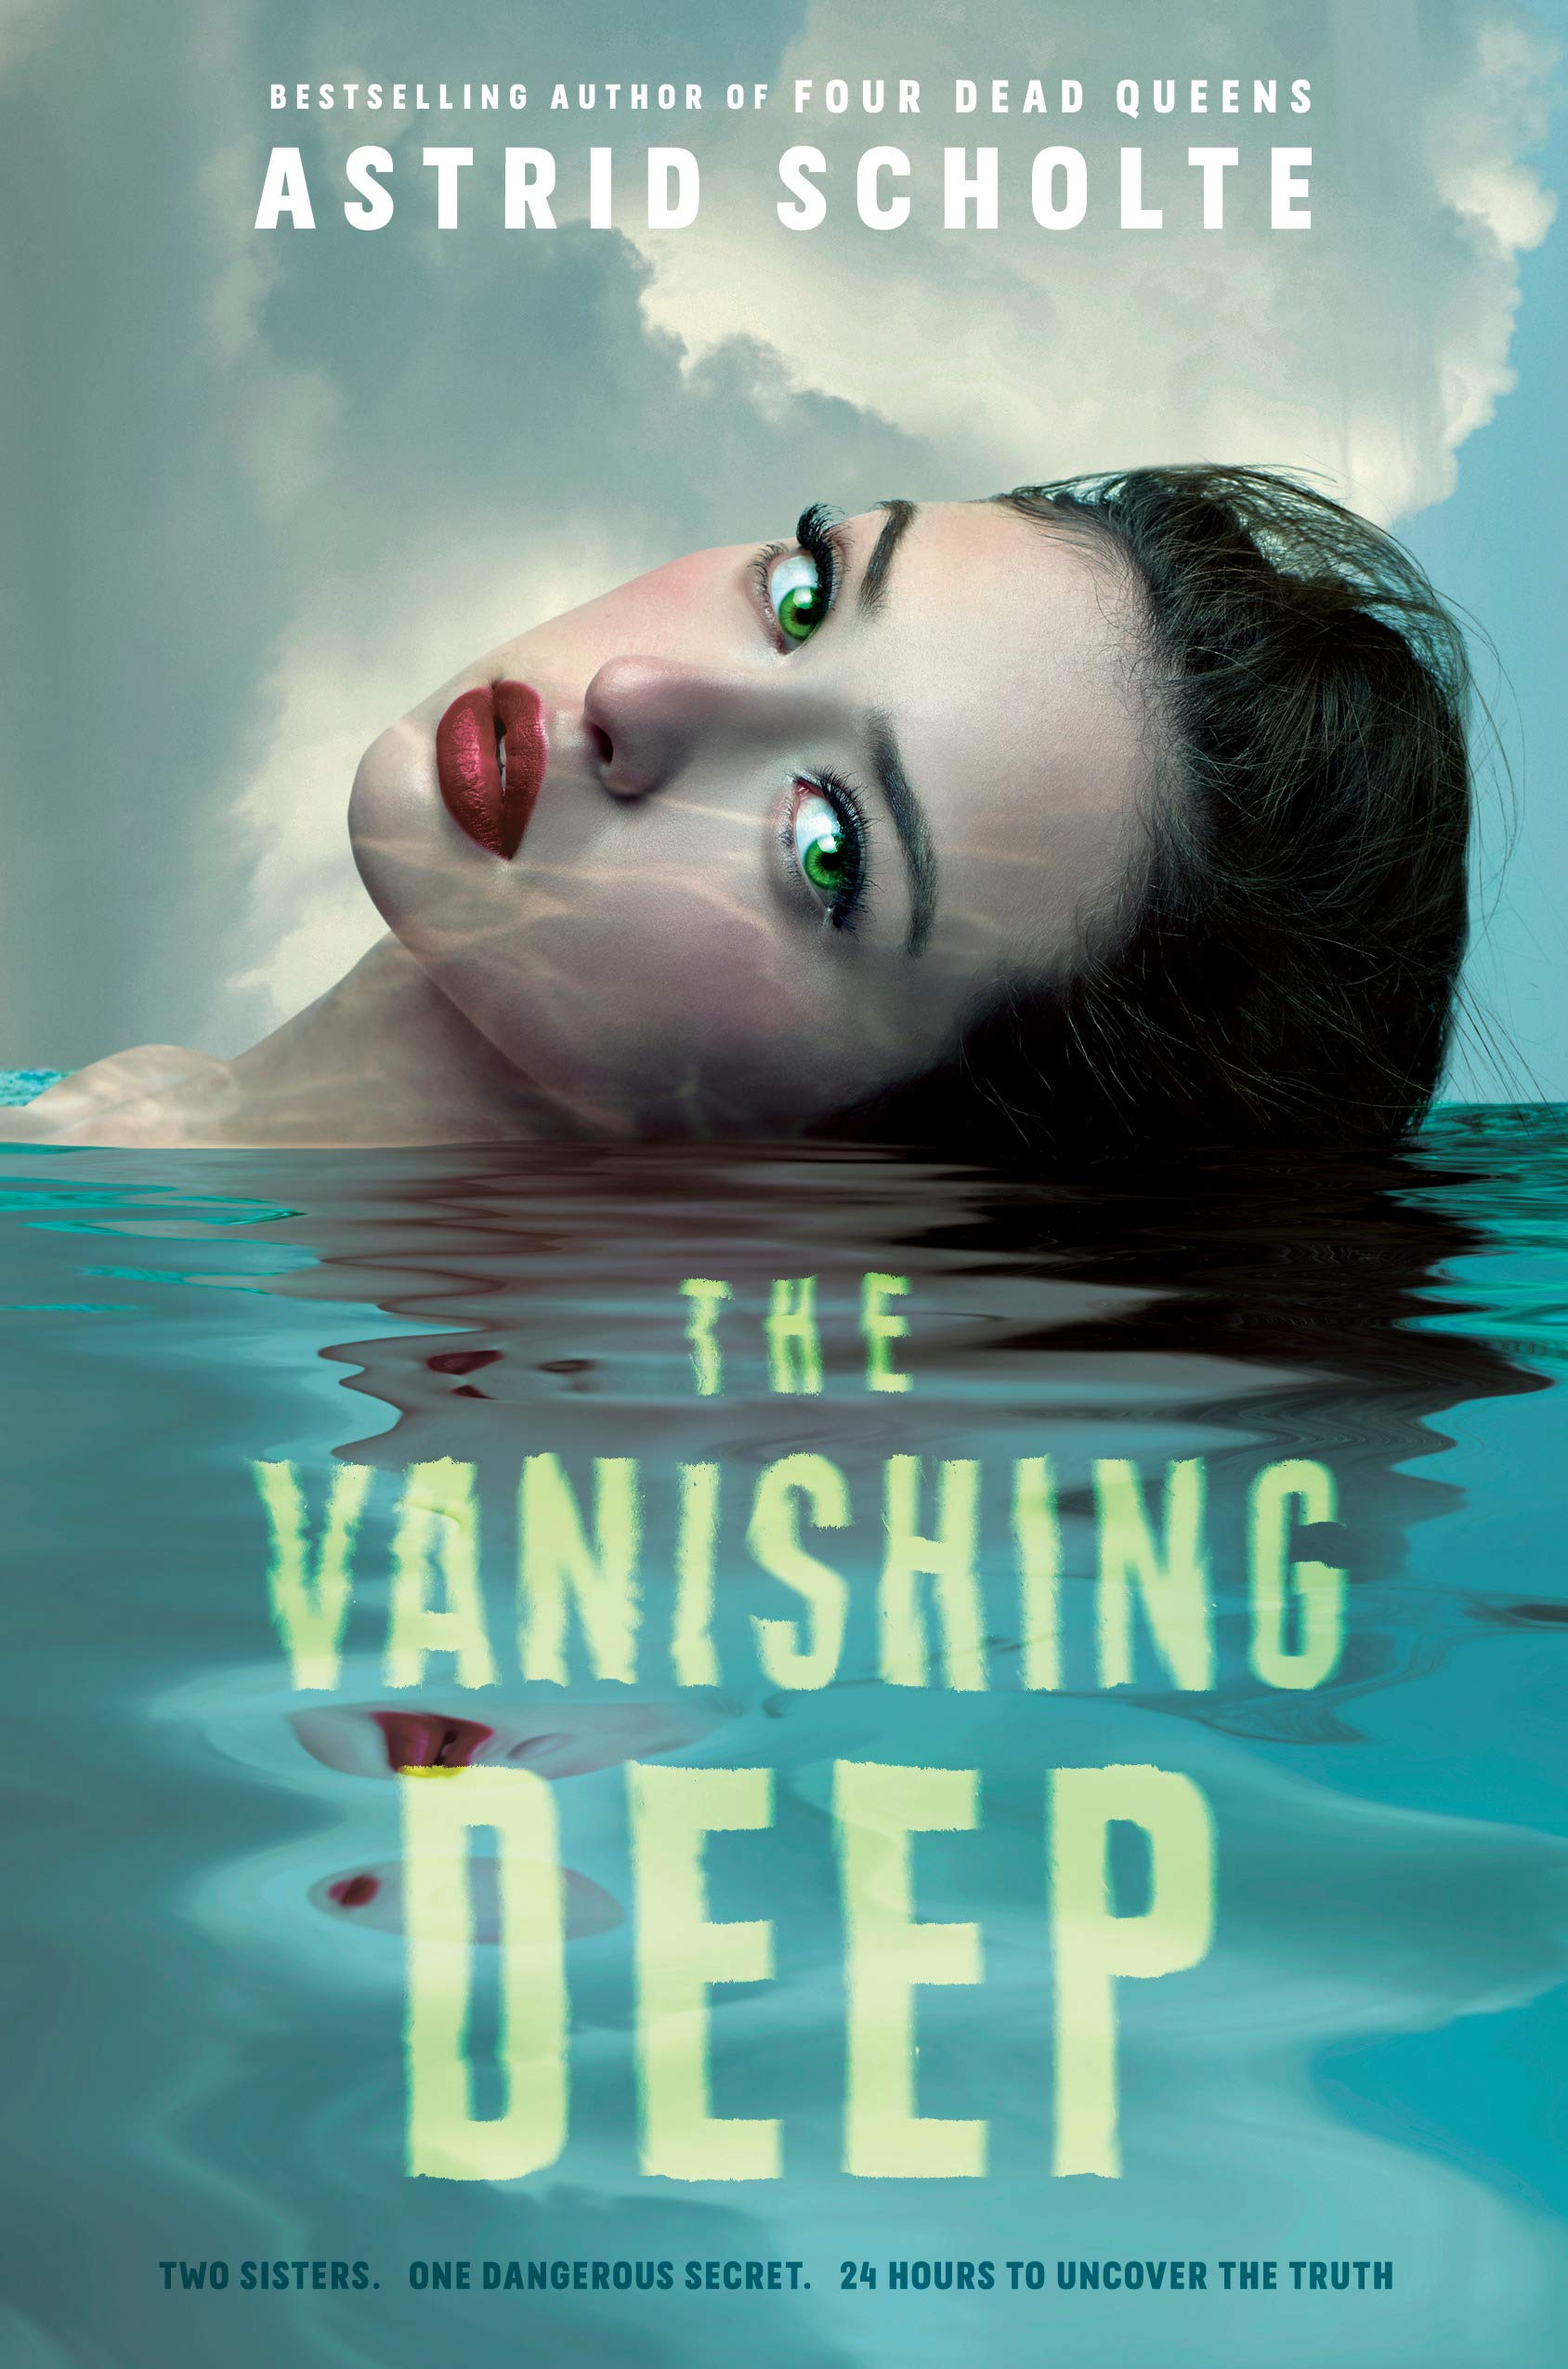 The Vanishing Deep - Astrid Scholte